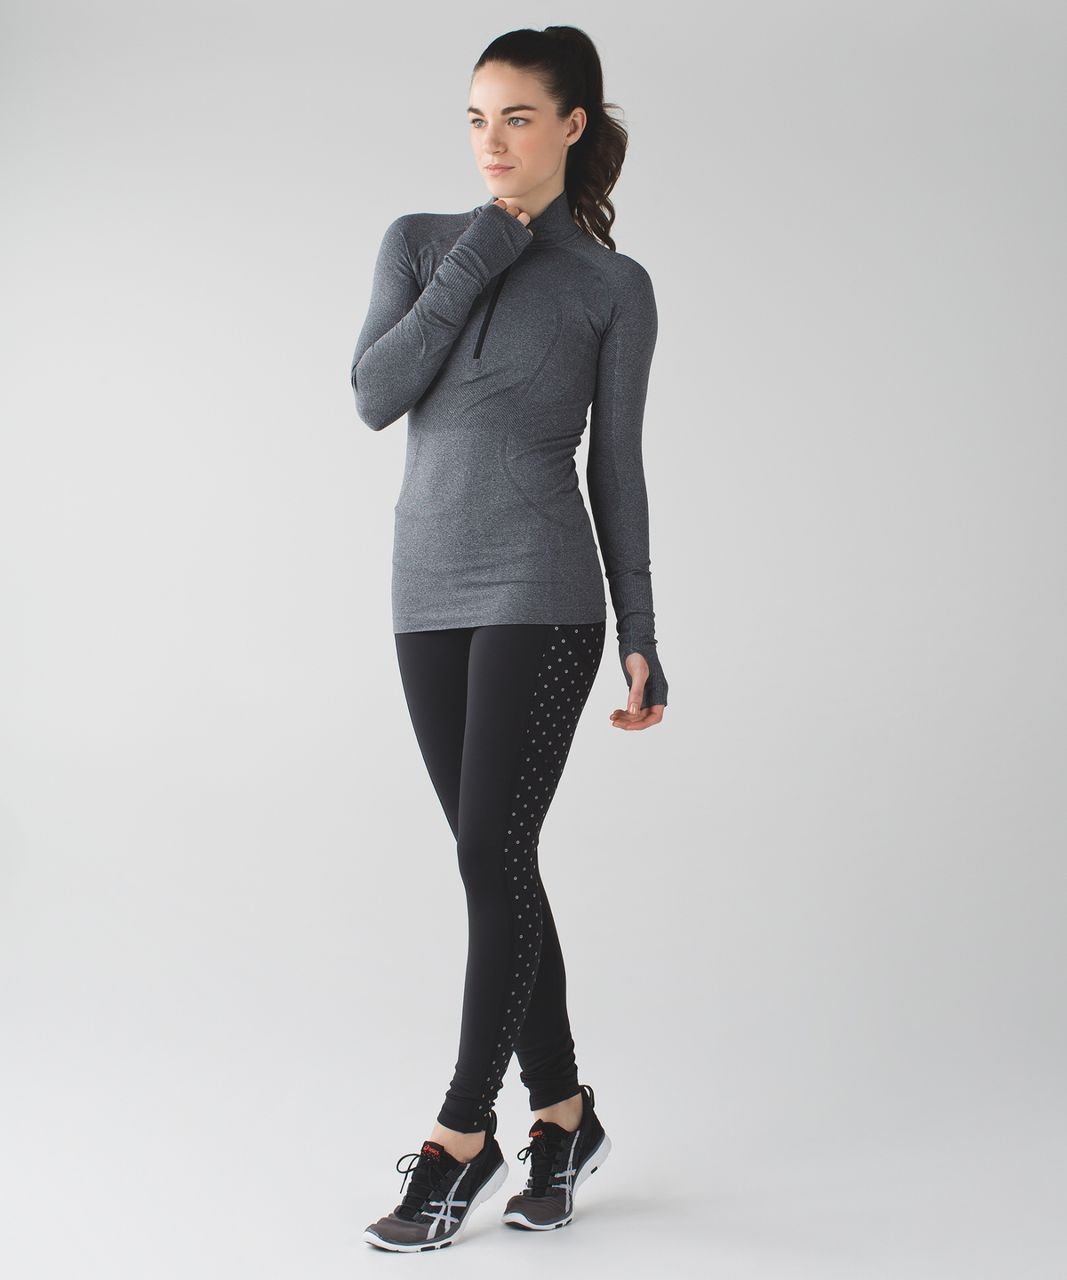 Lululemon Speed Tight IV (Brushed) - Black / Sequin Dot Black Silver